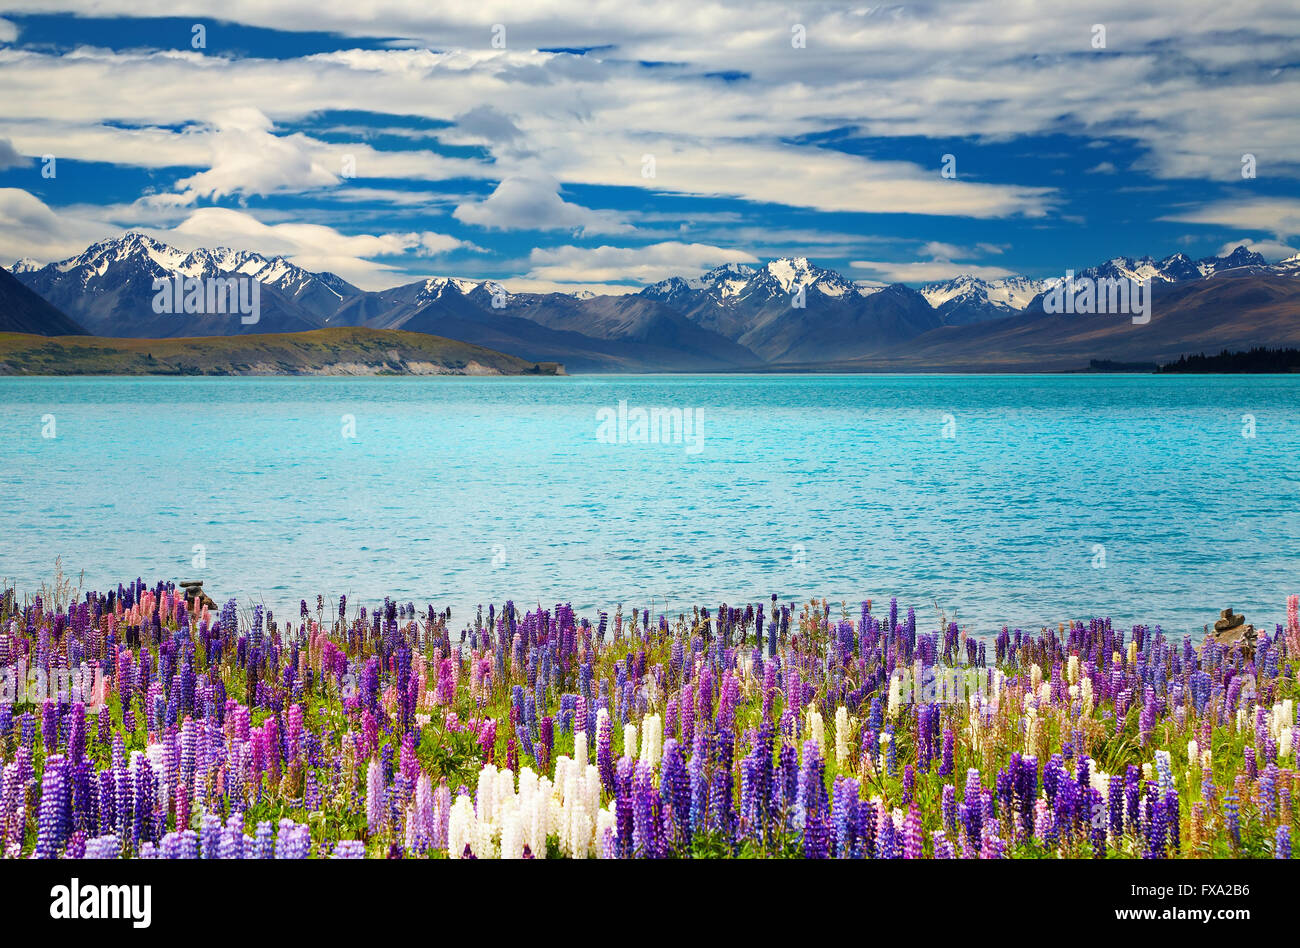 Lake Tekapo, South Island, New Zealand - Stock Image